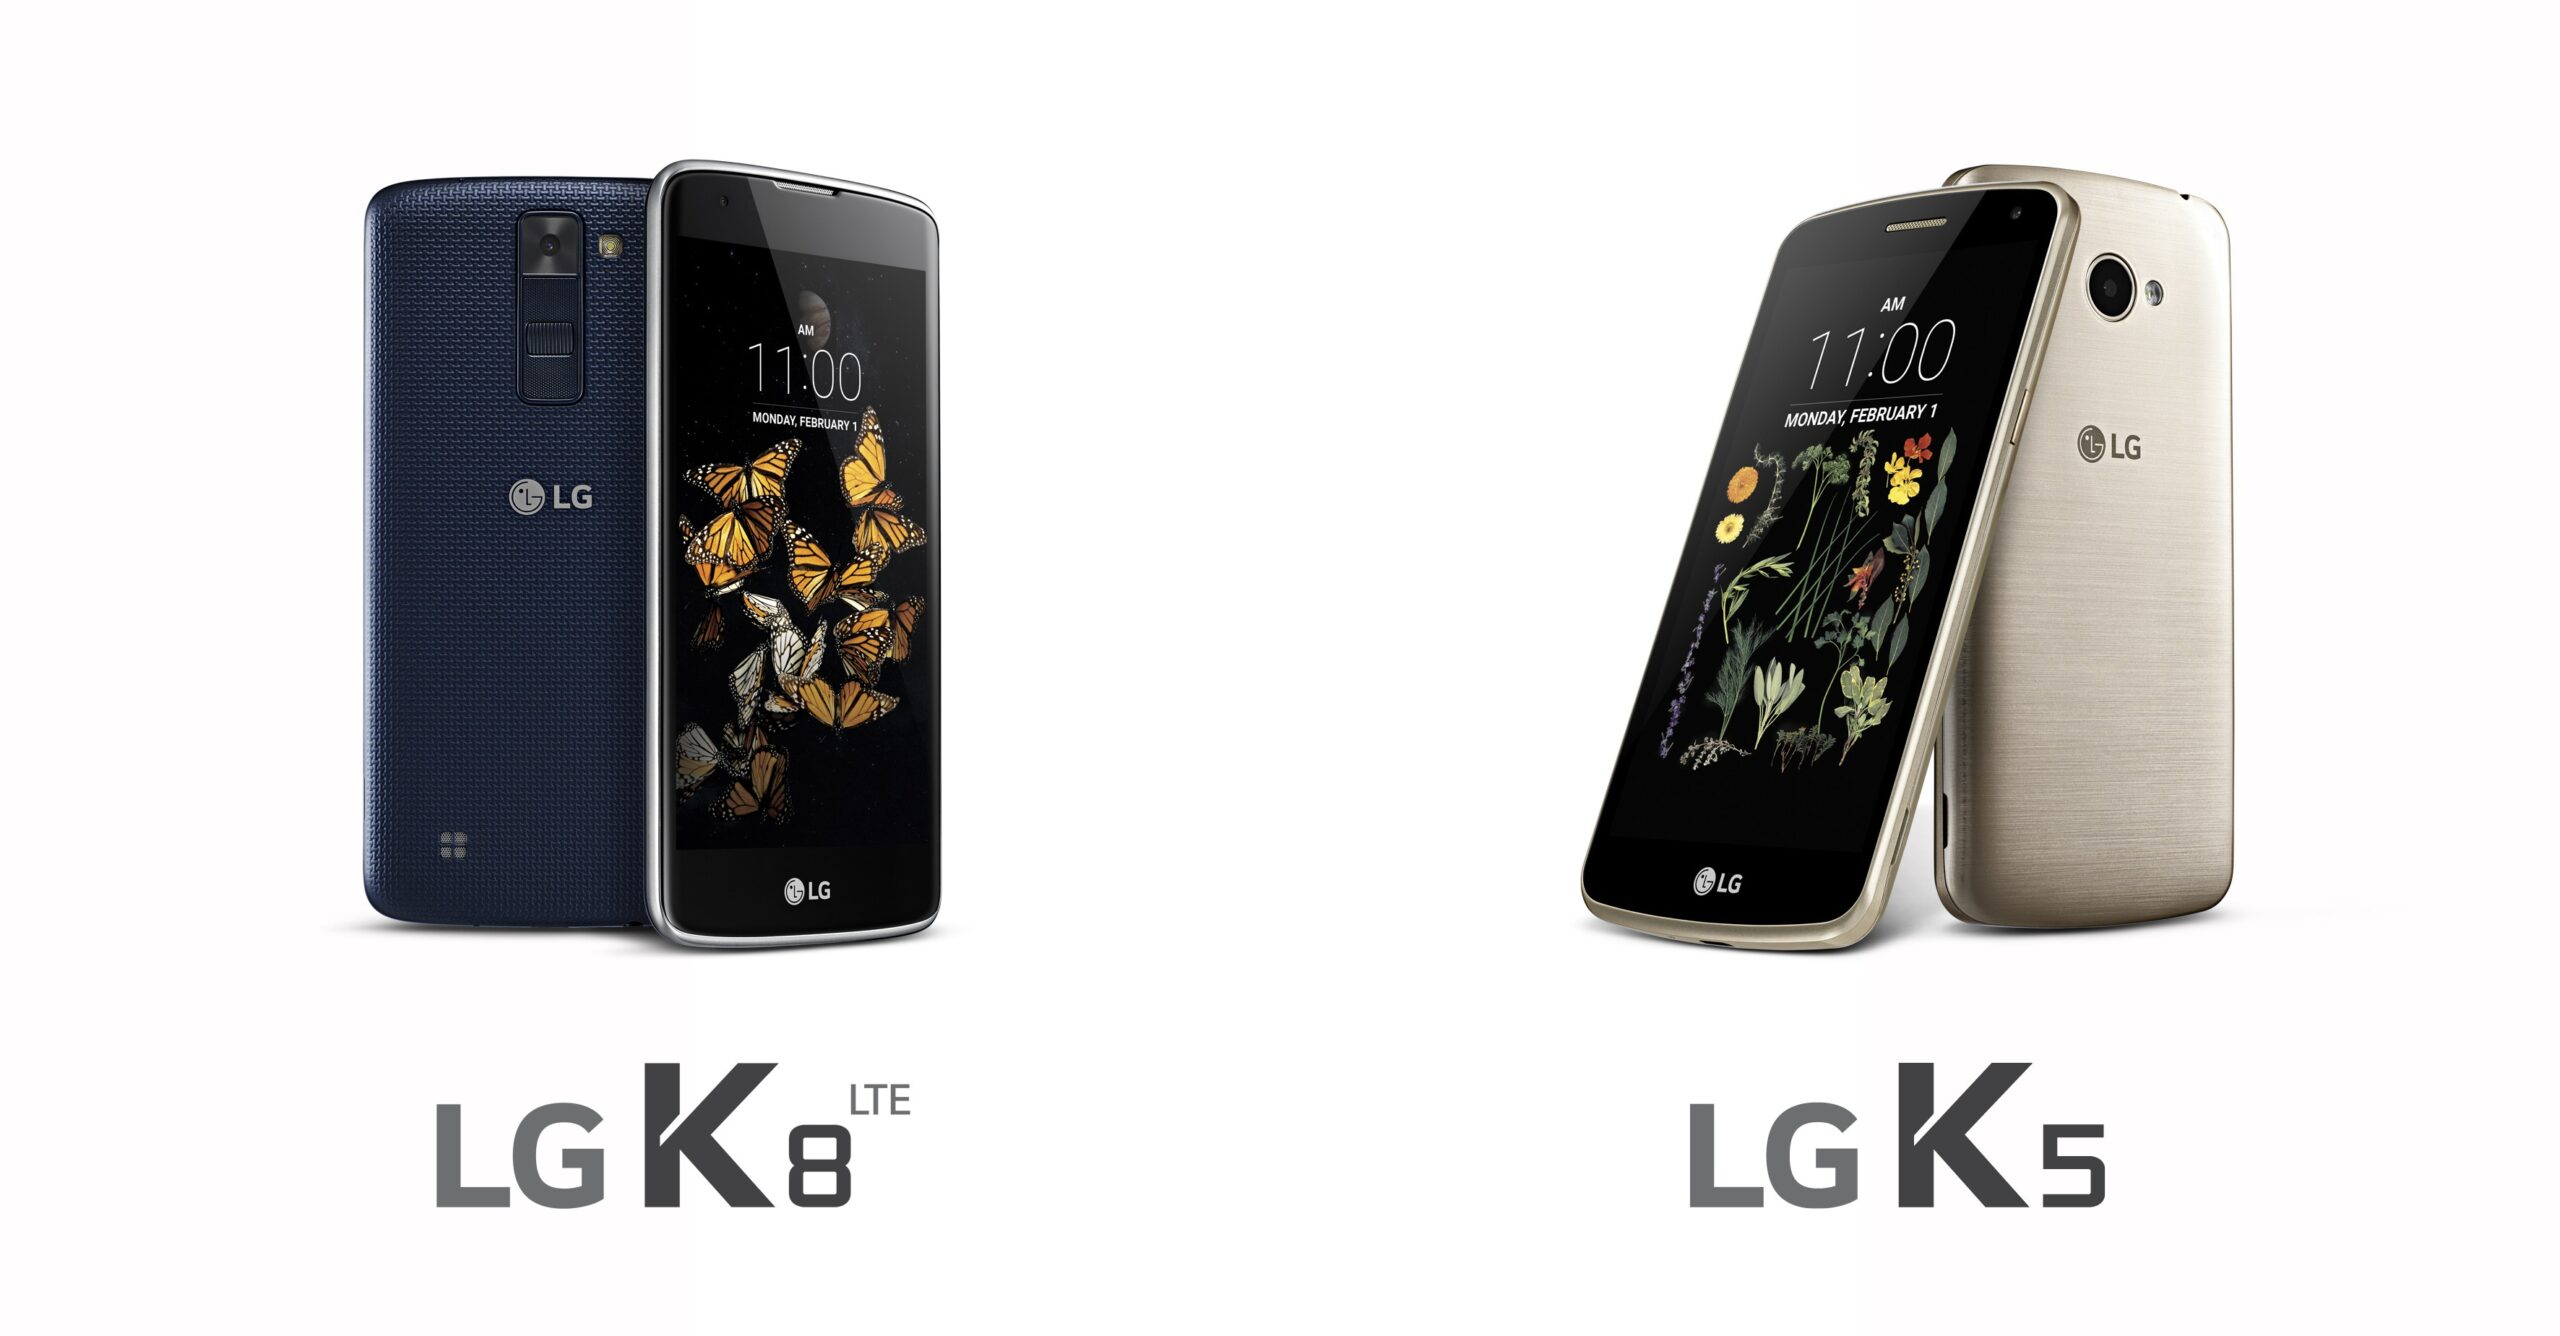 The front and back view of the LG K8 in Indigo and the front and back view of the LG K5 in Gold